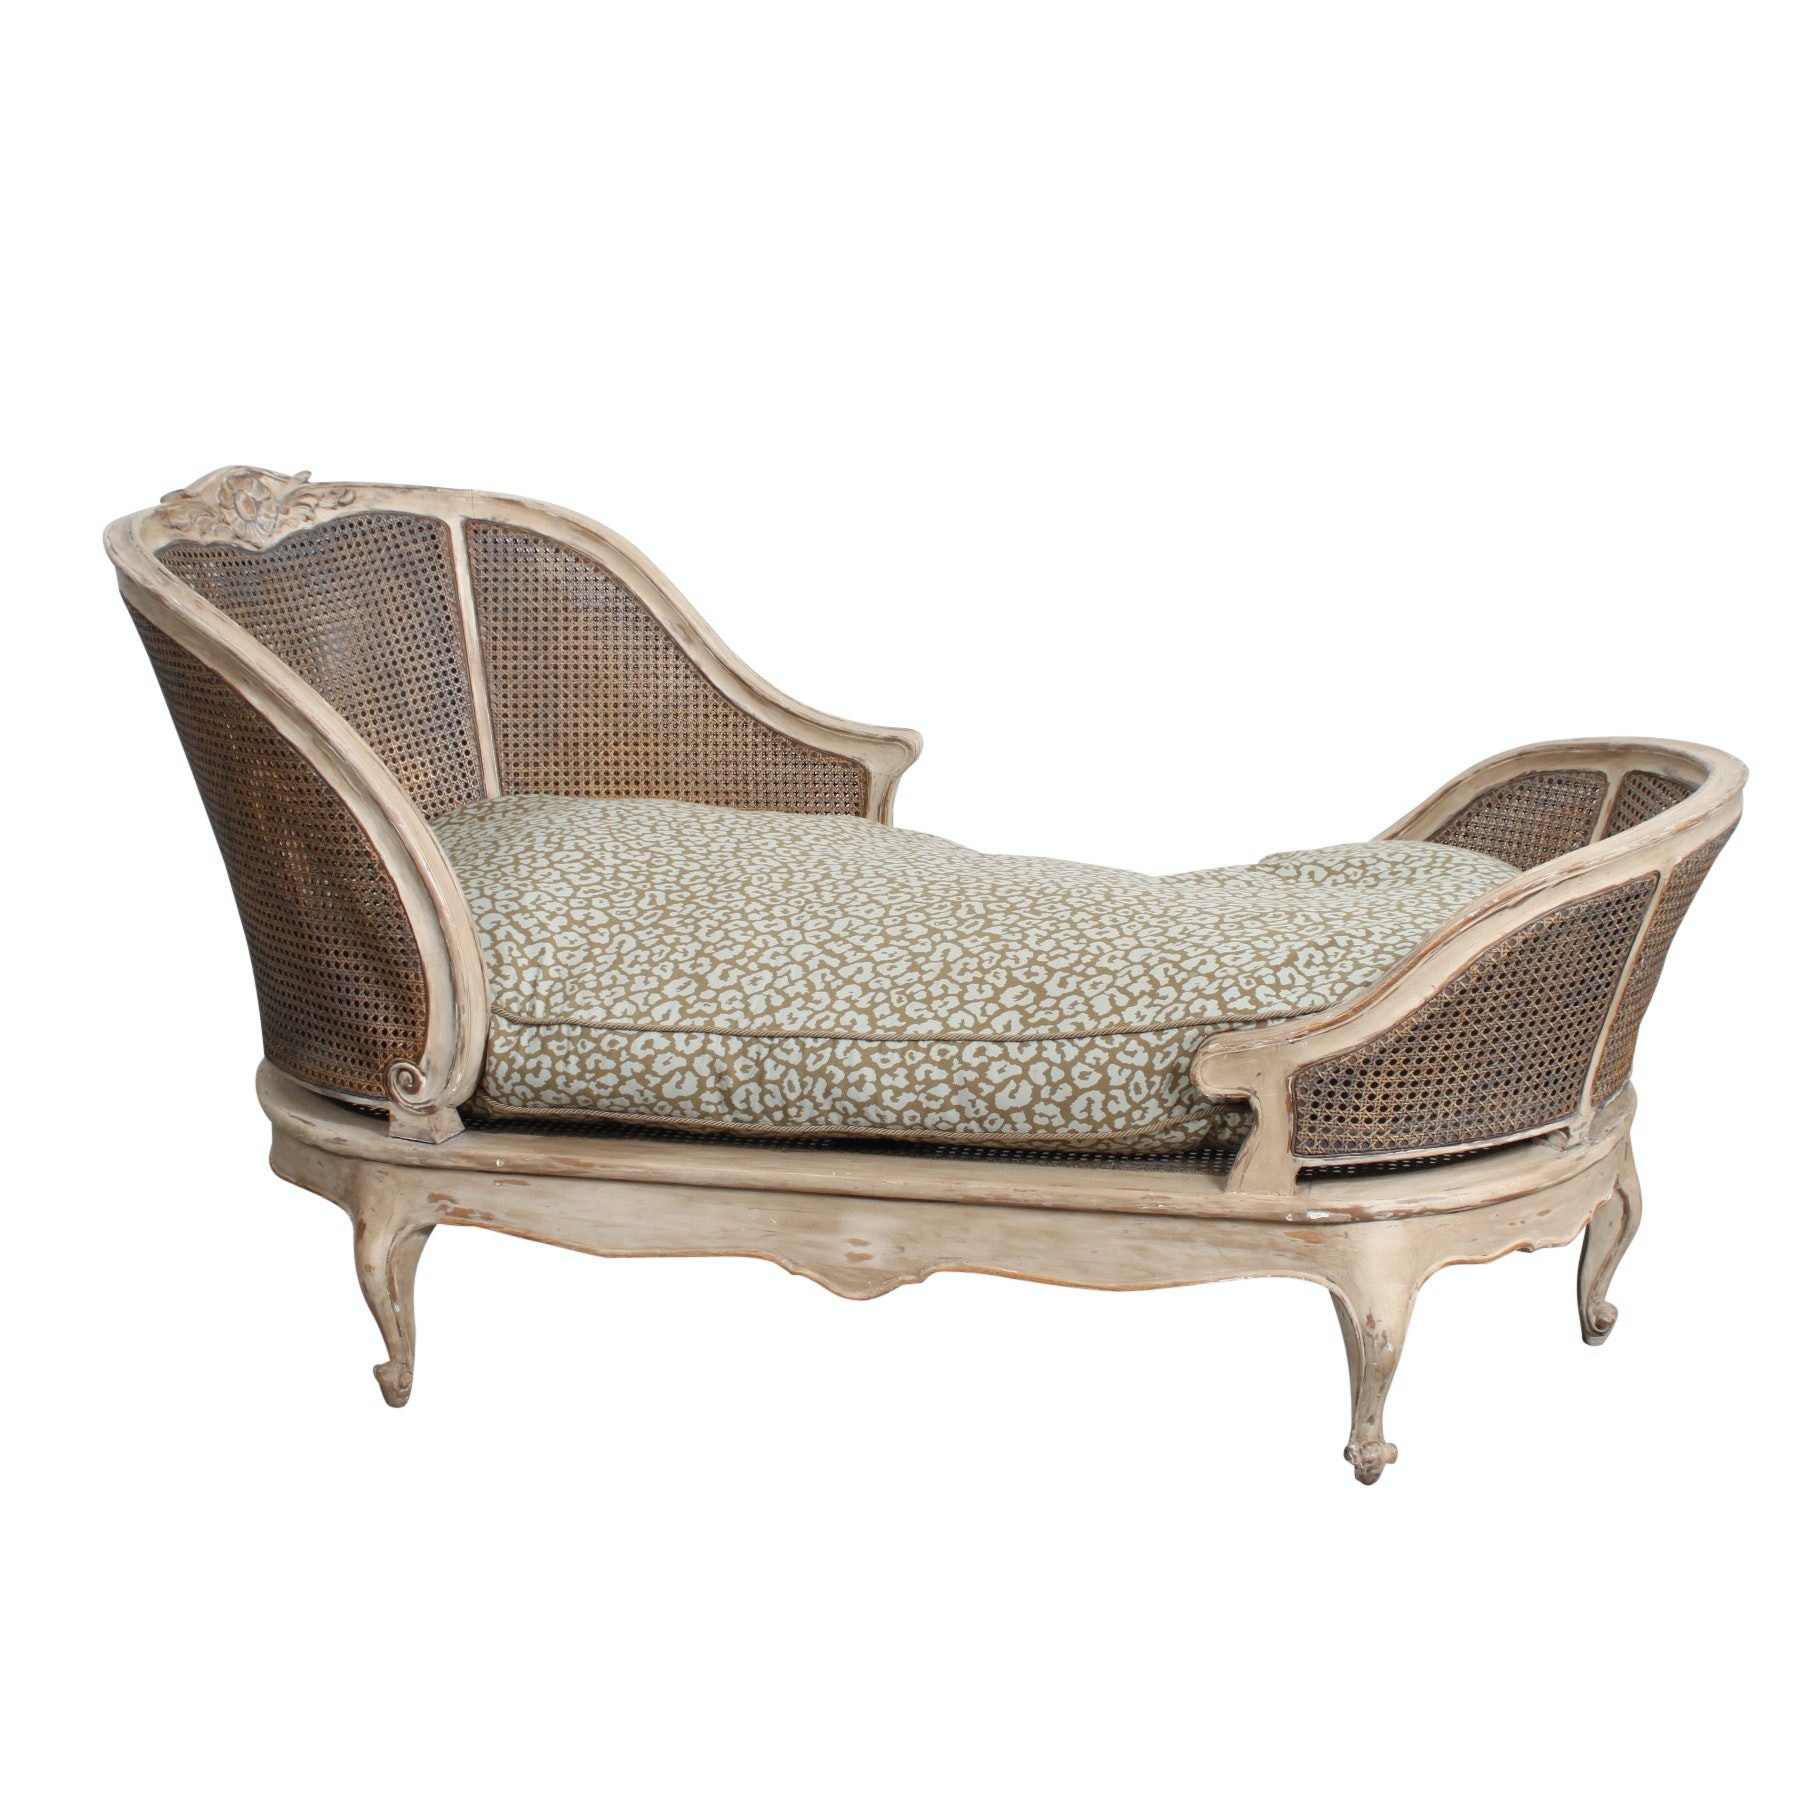 Louis XV Style Caned Chaise Lounge